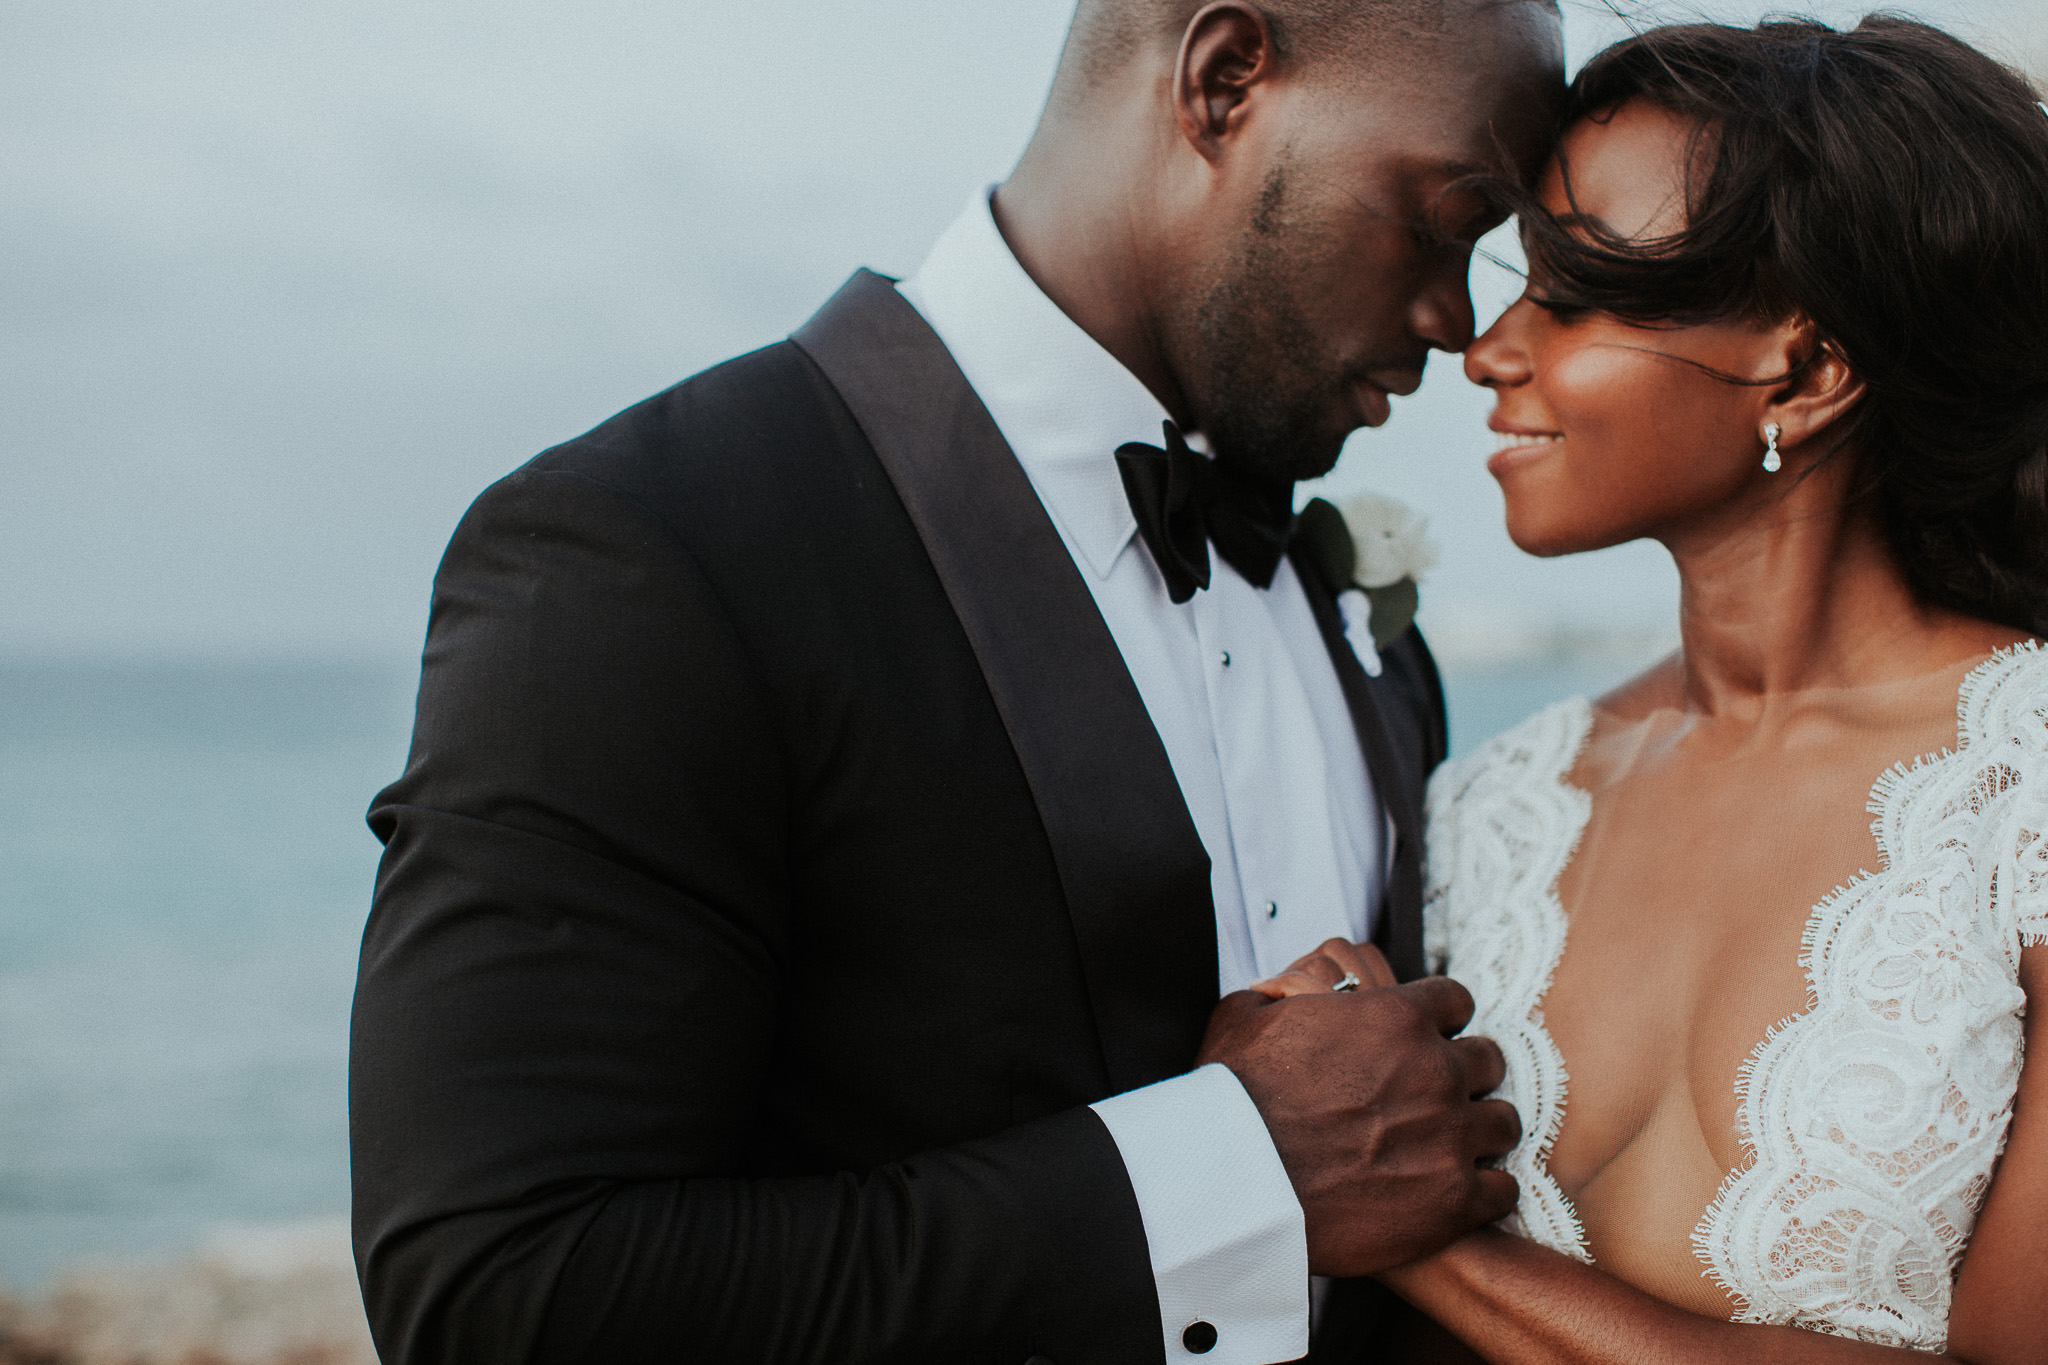 Herlene + Khari wedding in Trinidad and Tobago